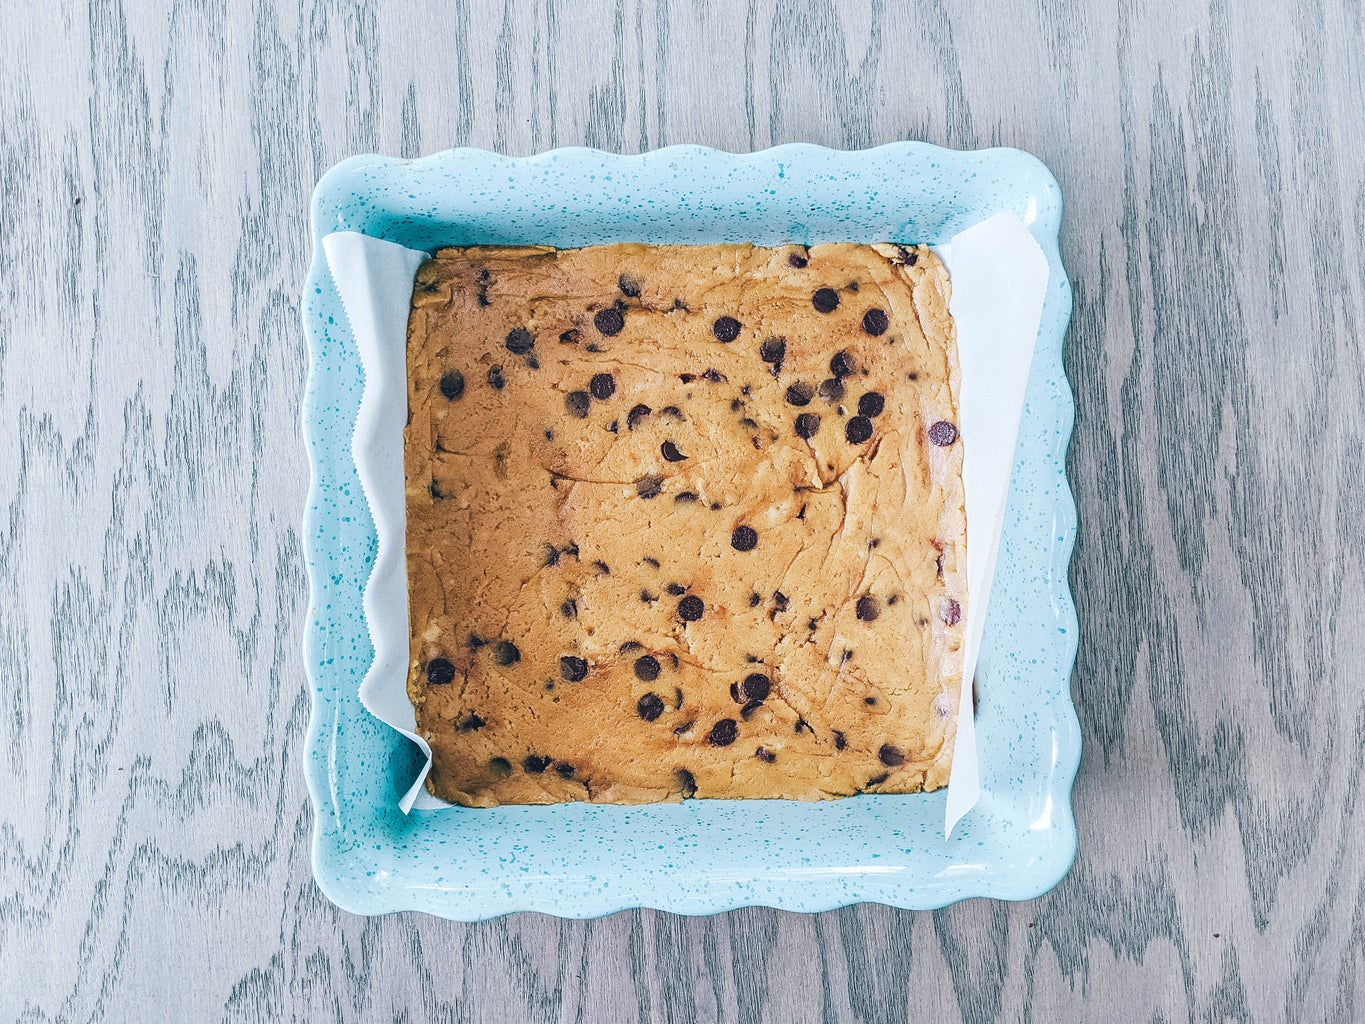 Bake Your Cookie Bar